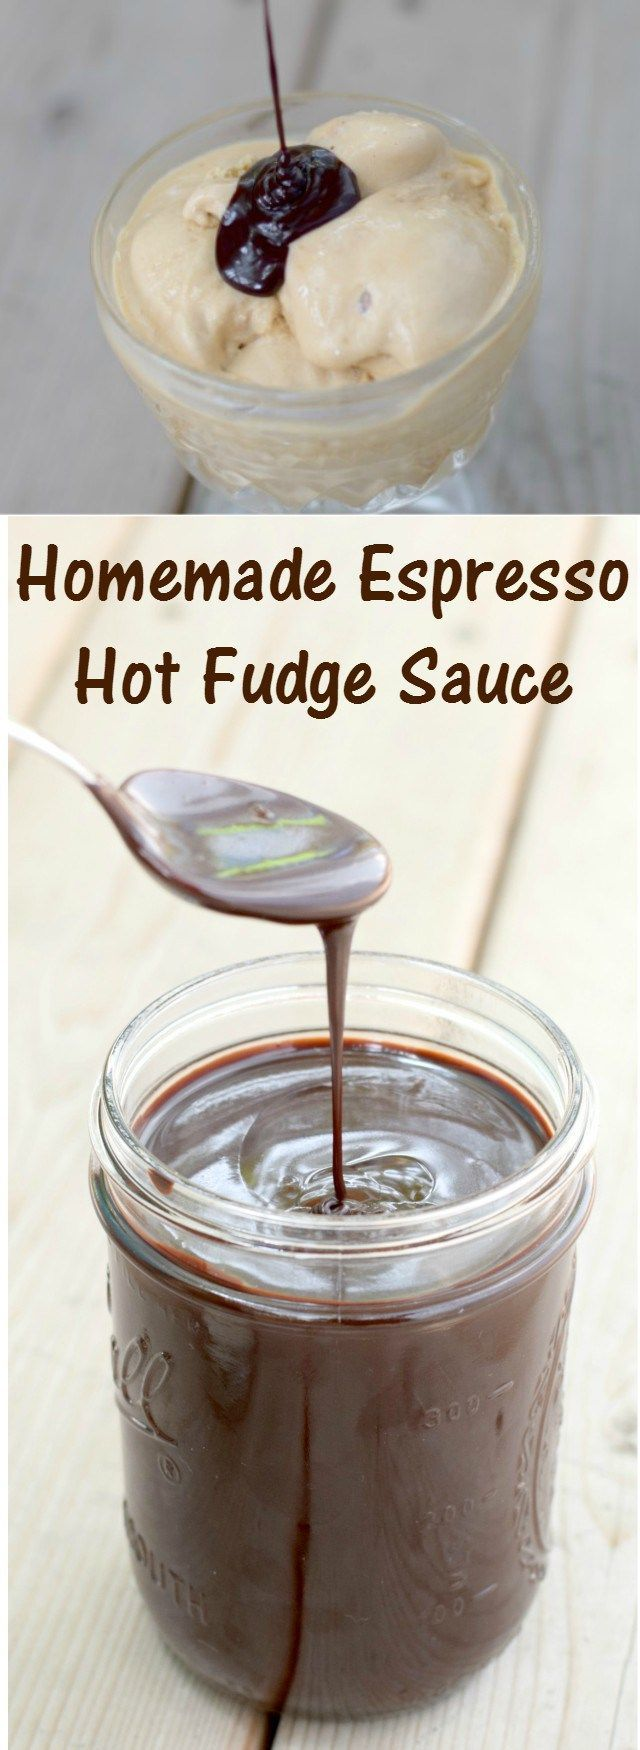 Delicious and easy recipe for a homemade espresso hot fudge sauce. An amazing dessert or ice cream topping, or just eat it from the jar for dessert. You can even mix it into your coffee. Ready in ten minutes! Yum!